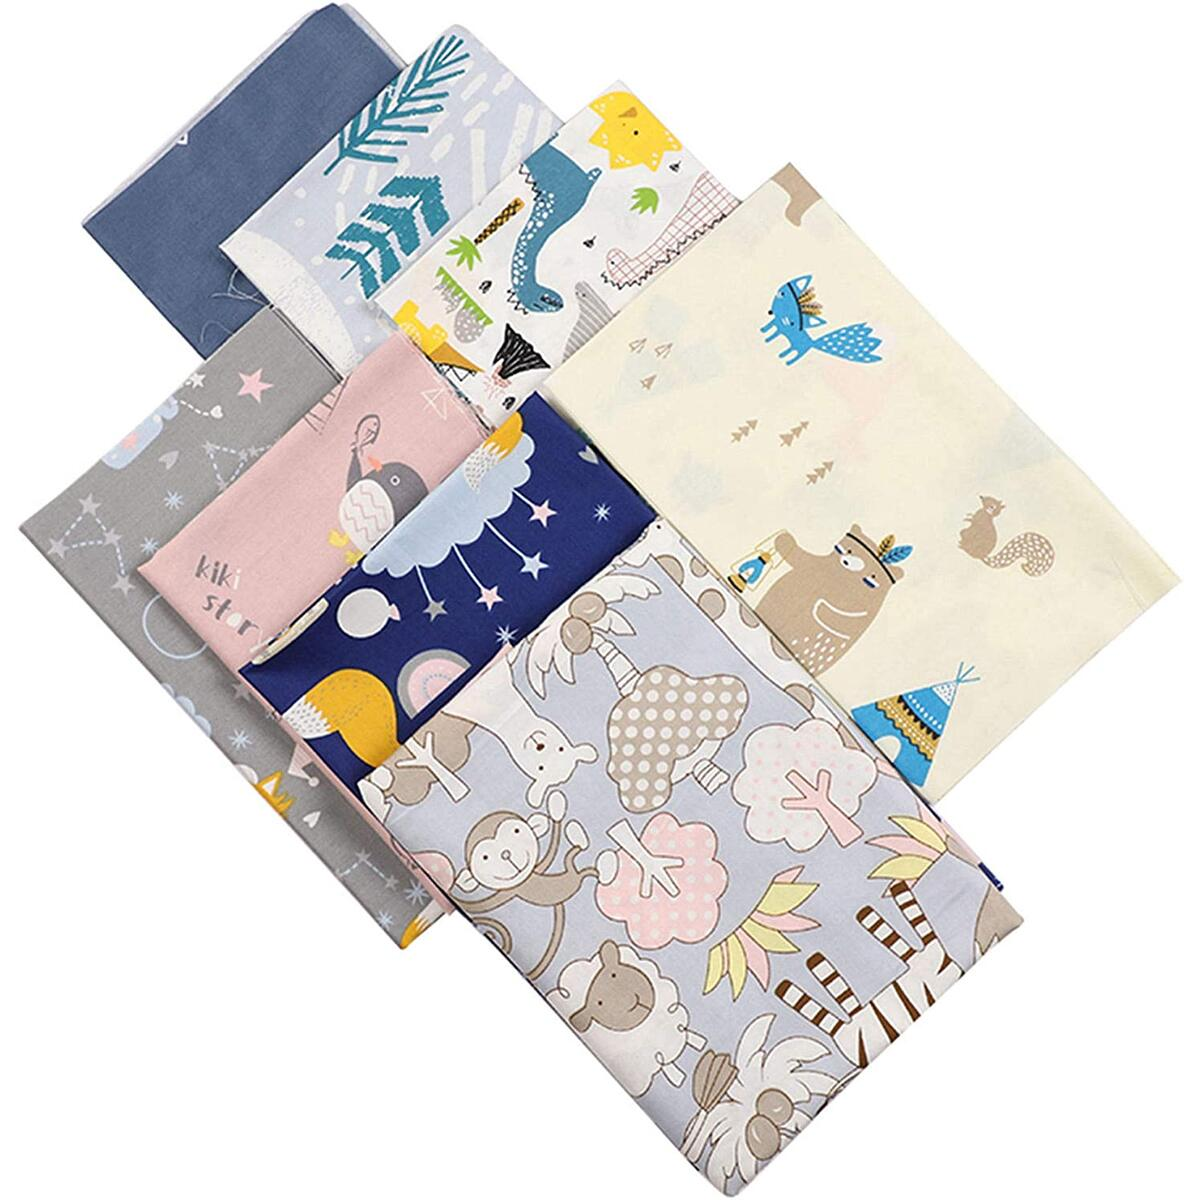 8pcs Precut Fat Quarters Cotton Fabric Bundles - Animal Theme Fabric - DIY Crafting Series - 100% Cotton - Eco-Friendly – 8pcs Printed Fabric - 18x22 Inches Each